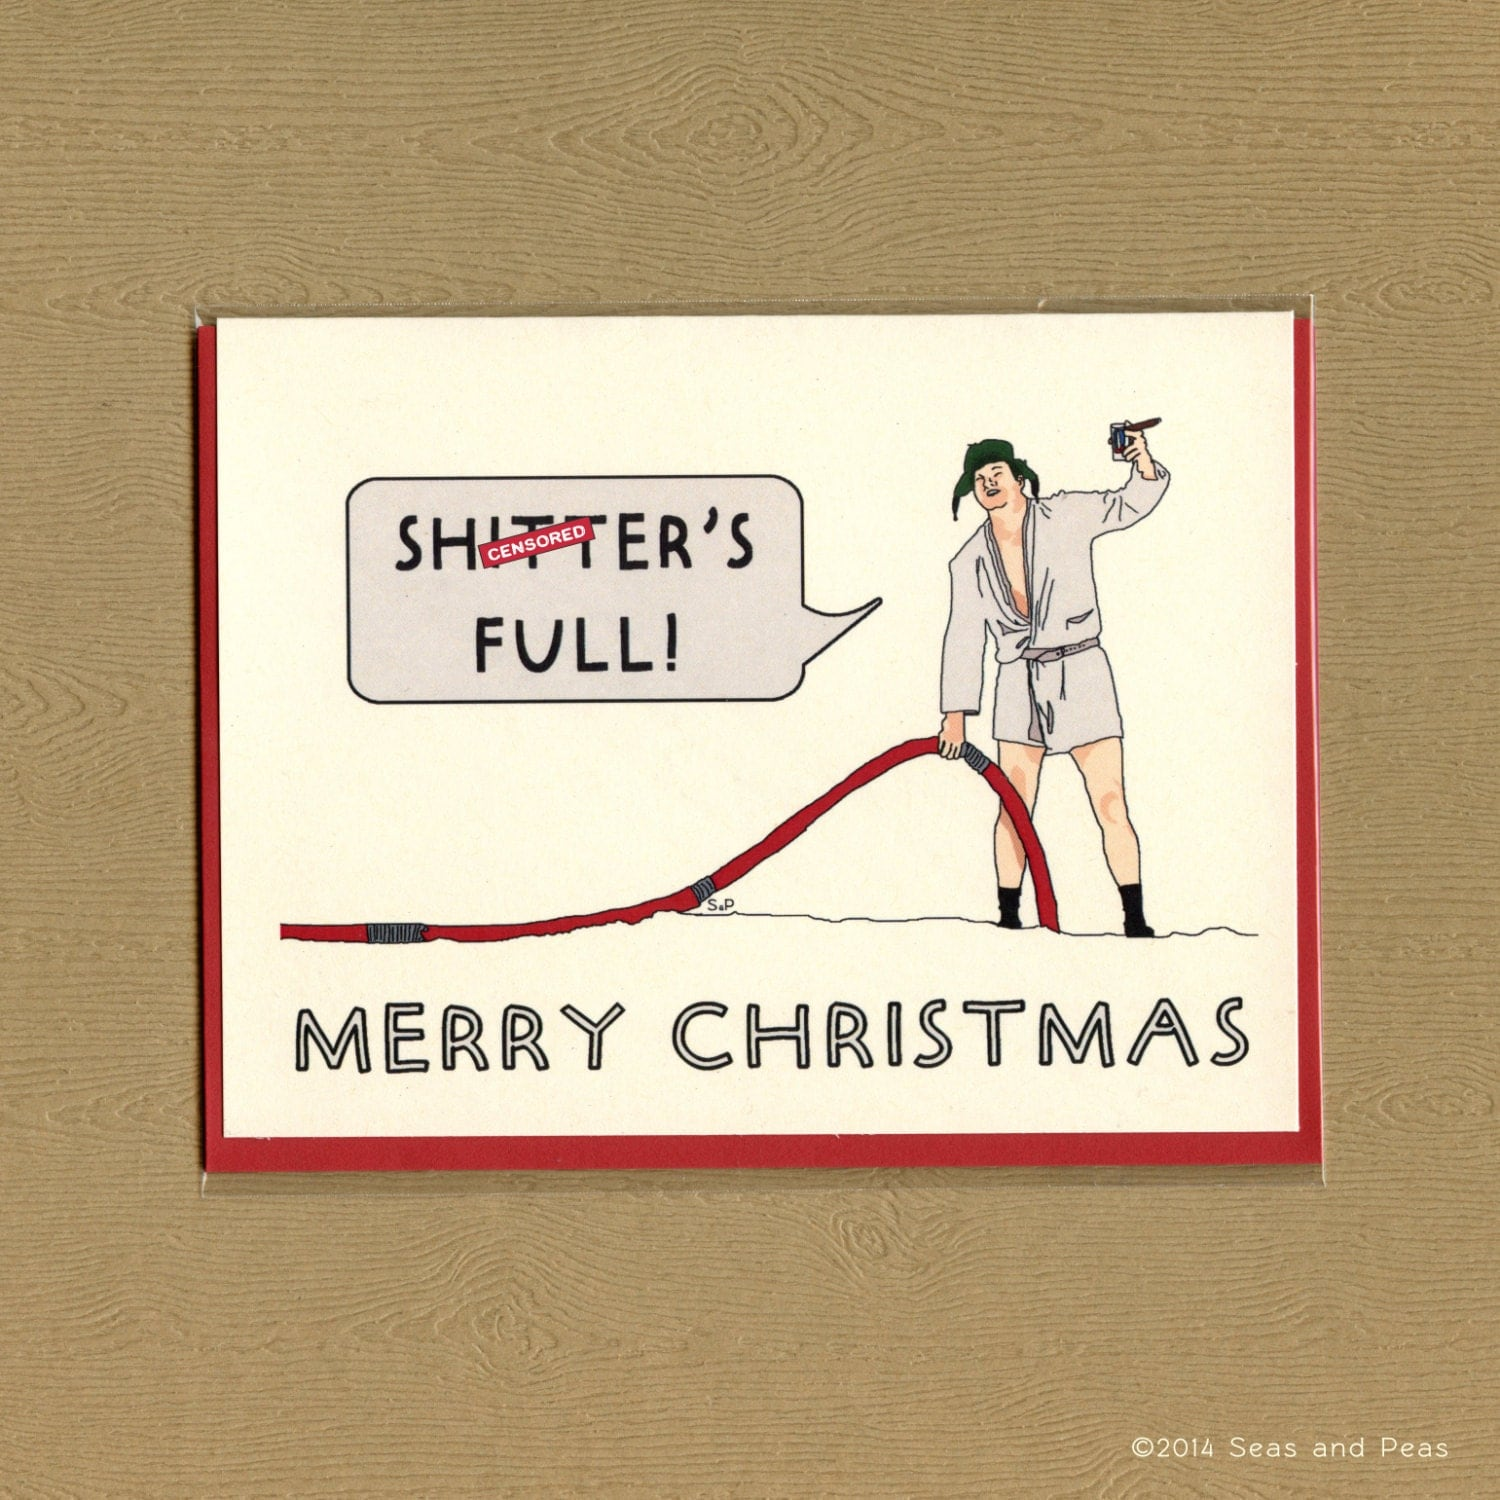 National Lampoon Christmas Vacation Christmas Cards - My Shopping on ...